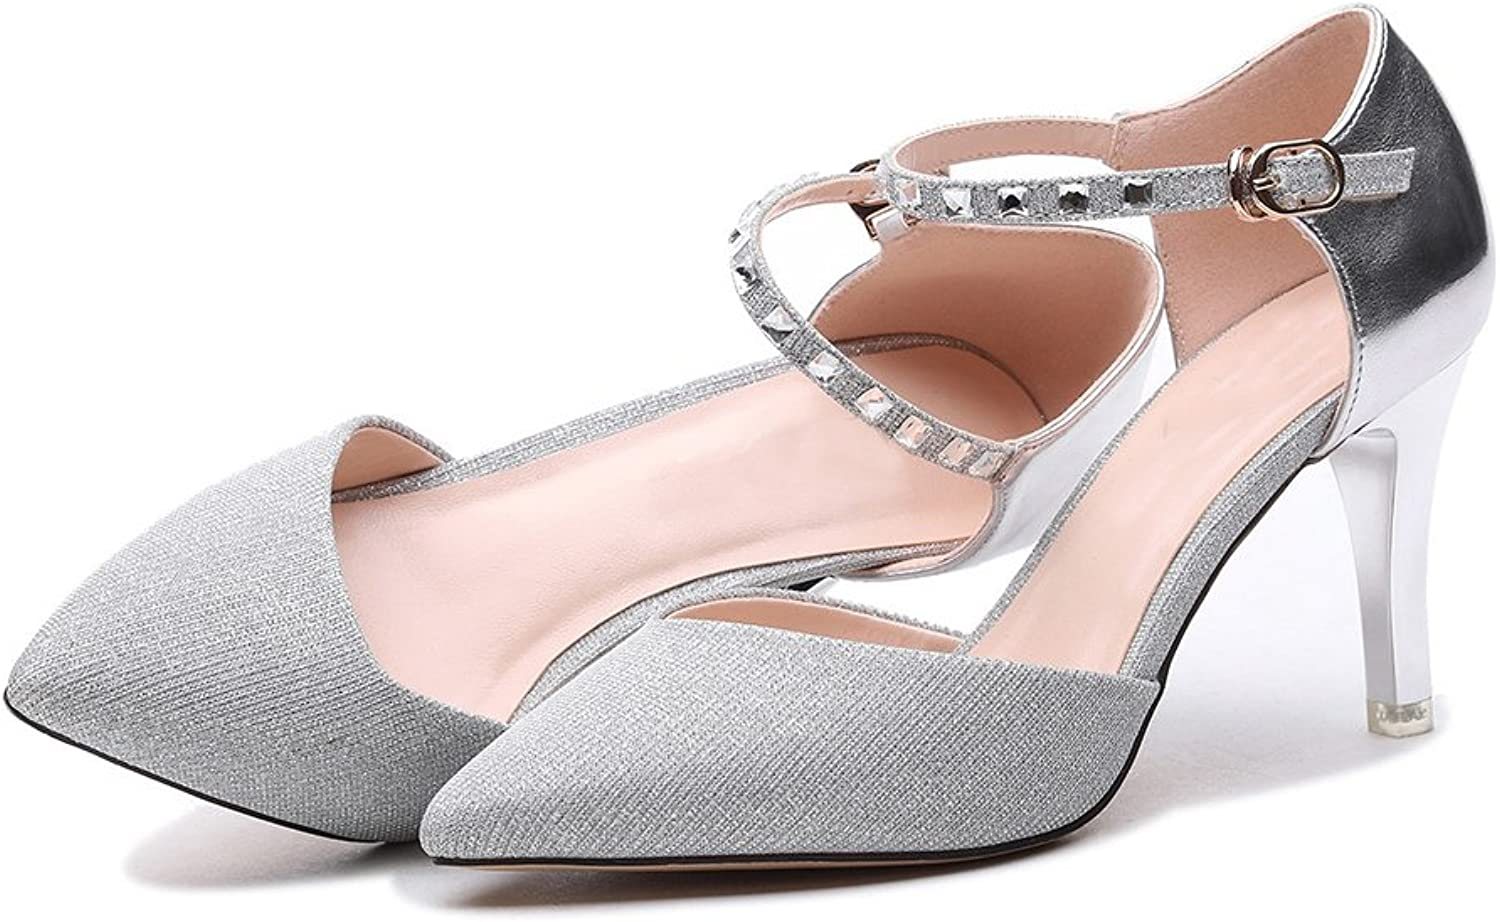 YUBIN Single shoes Female Shallow Pointed High Heels Female Fine with Hollow Fashion Women's shoes Buckle with Bright, Comfortable, Fashion shoes (color   Silver, Size   36)